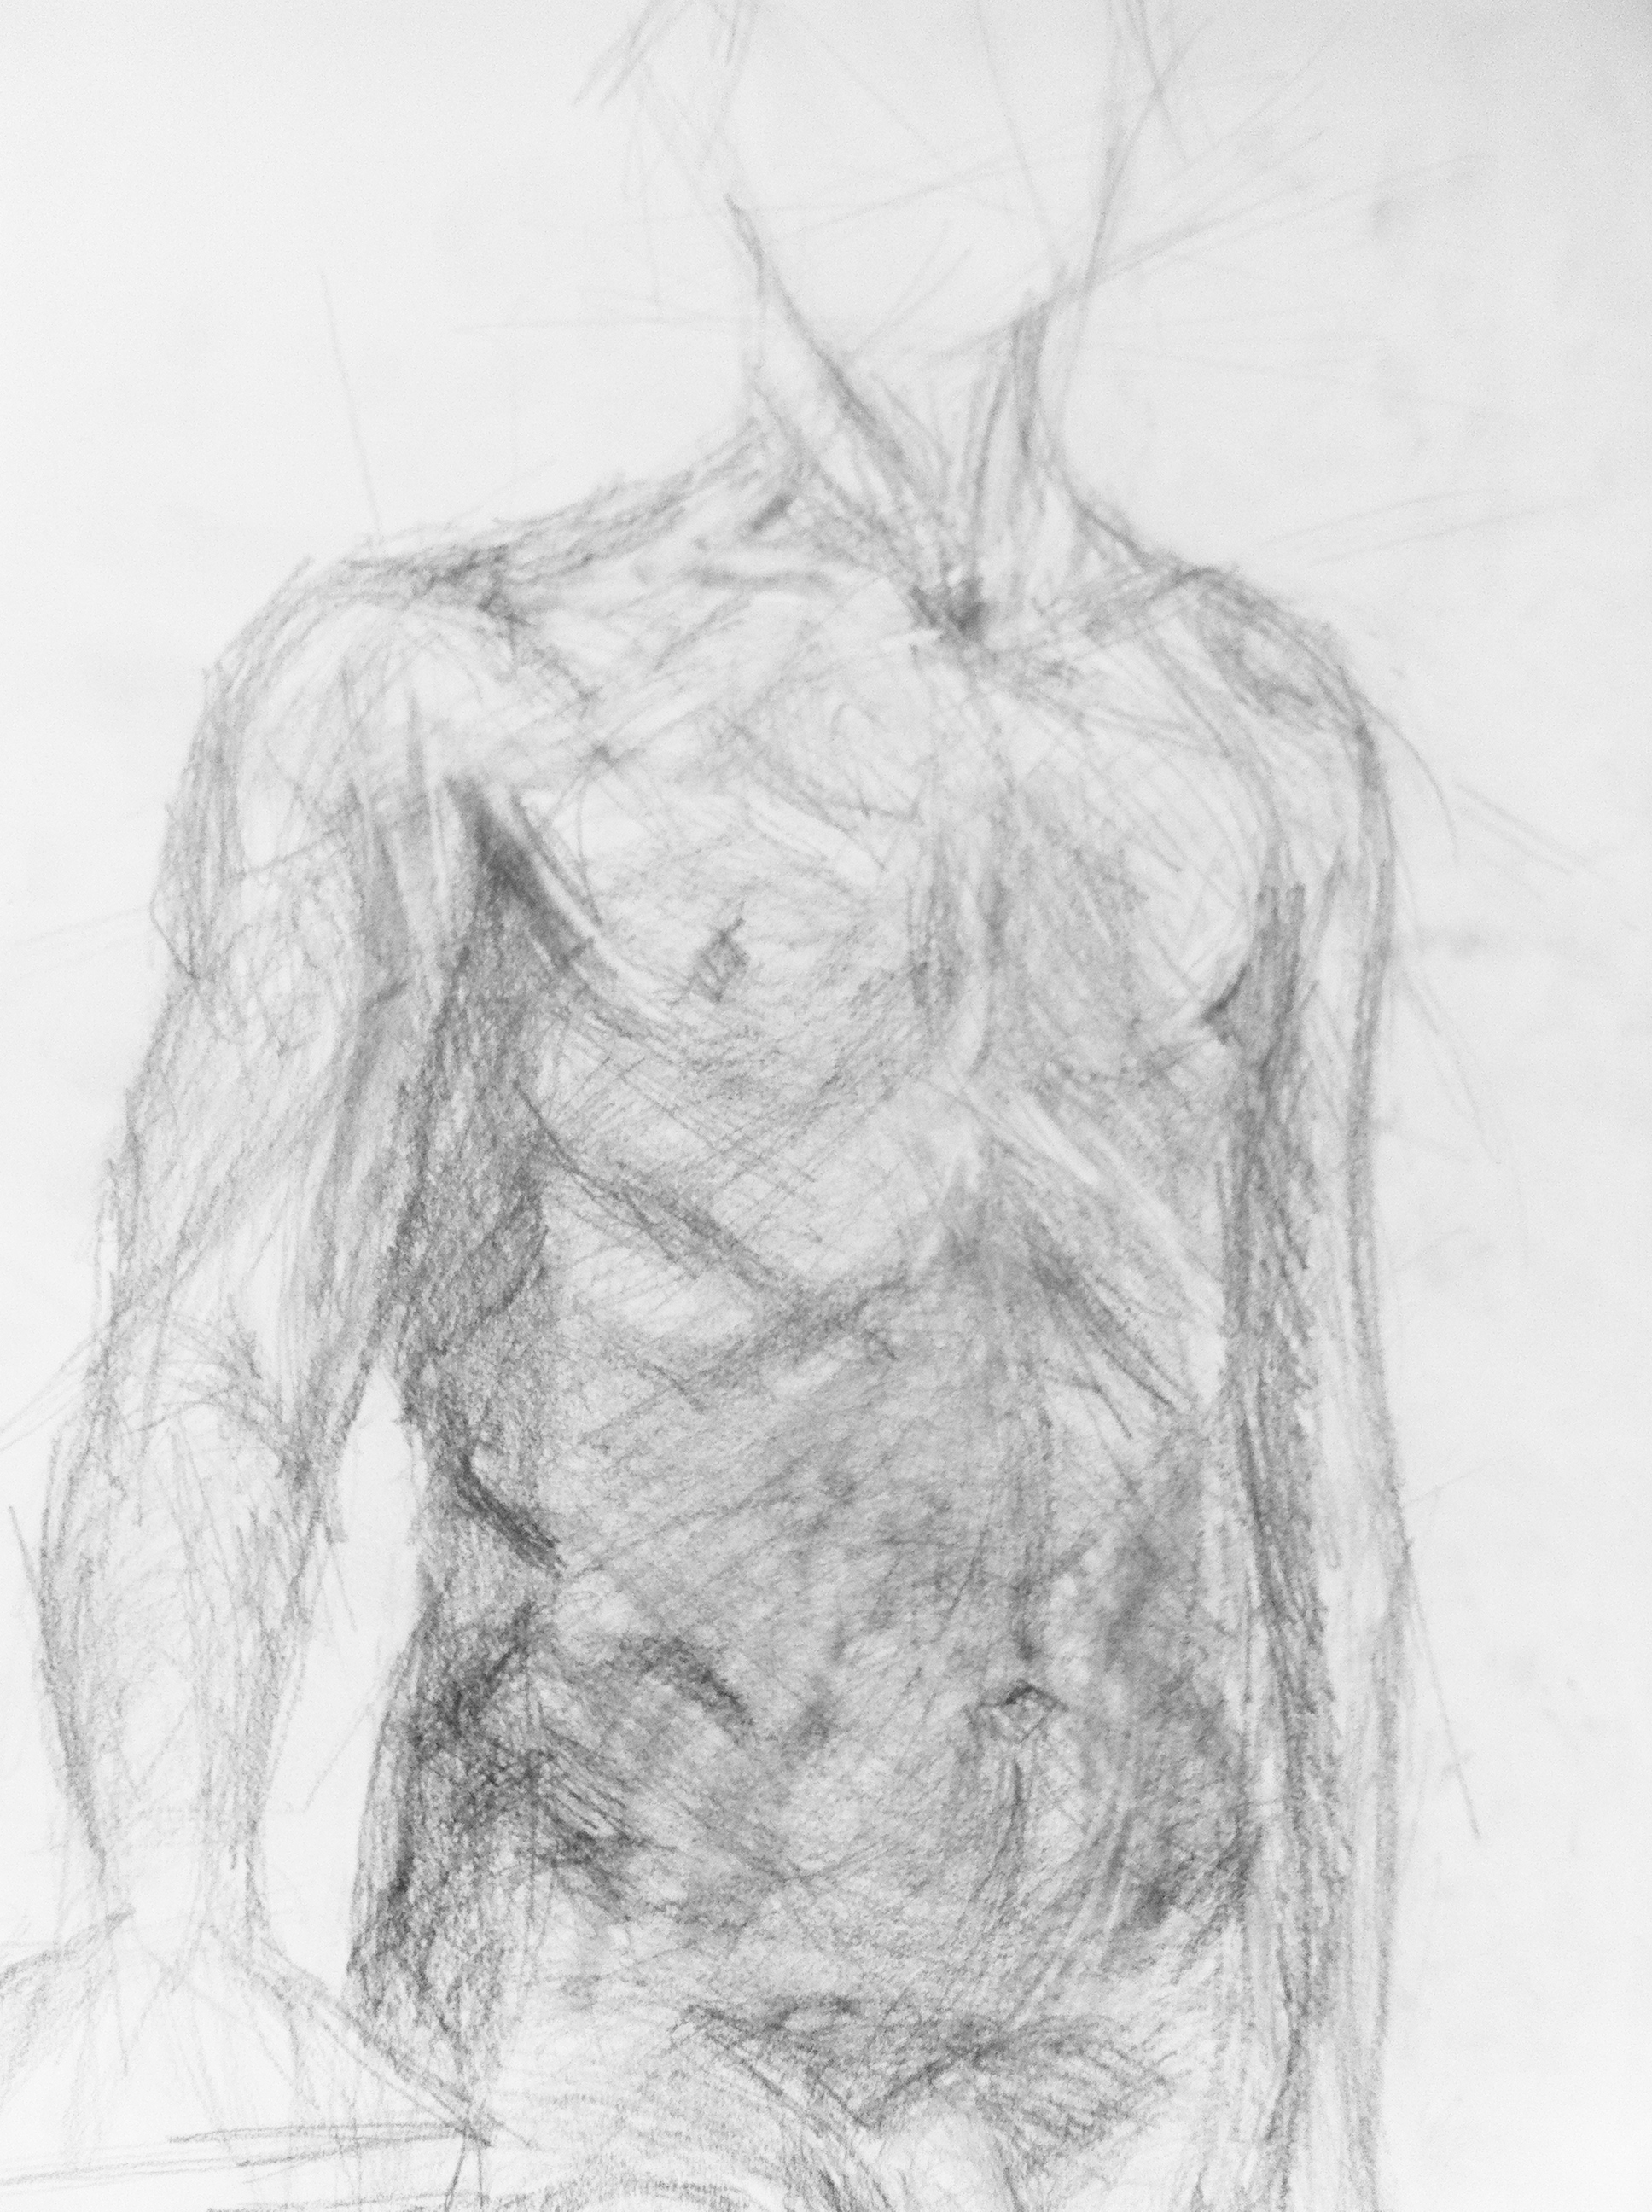 lifedrawing_man.jpg